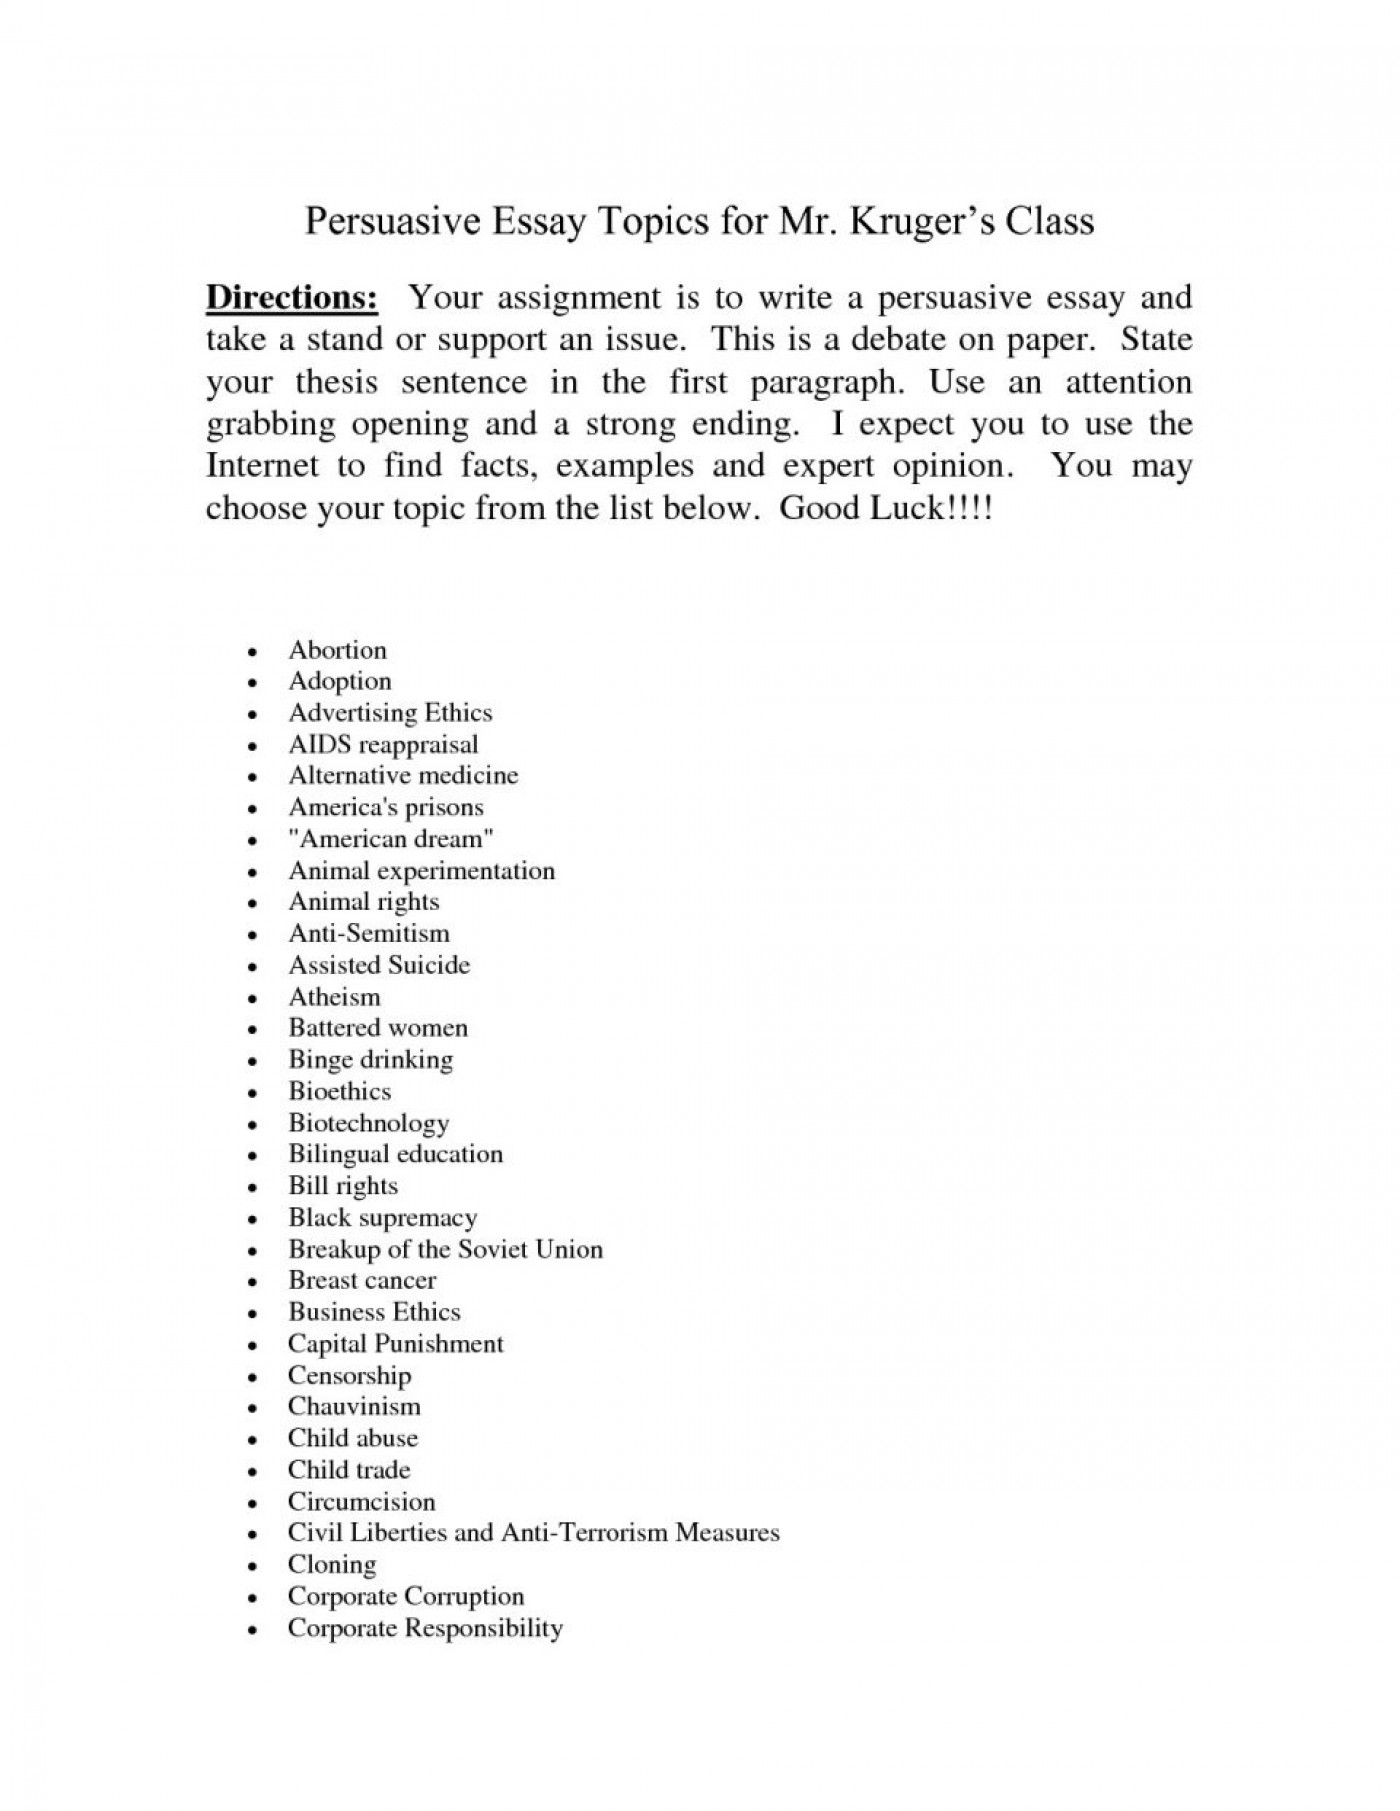 English Creative Writing Essays  Essay Topics For Research Paper also Research Paper Essay Good Proposal Essay Topics Proposal Essay Topic List Of  Teaching Essay Writing To High School Students